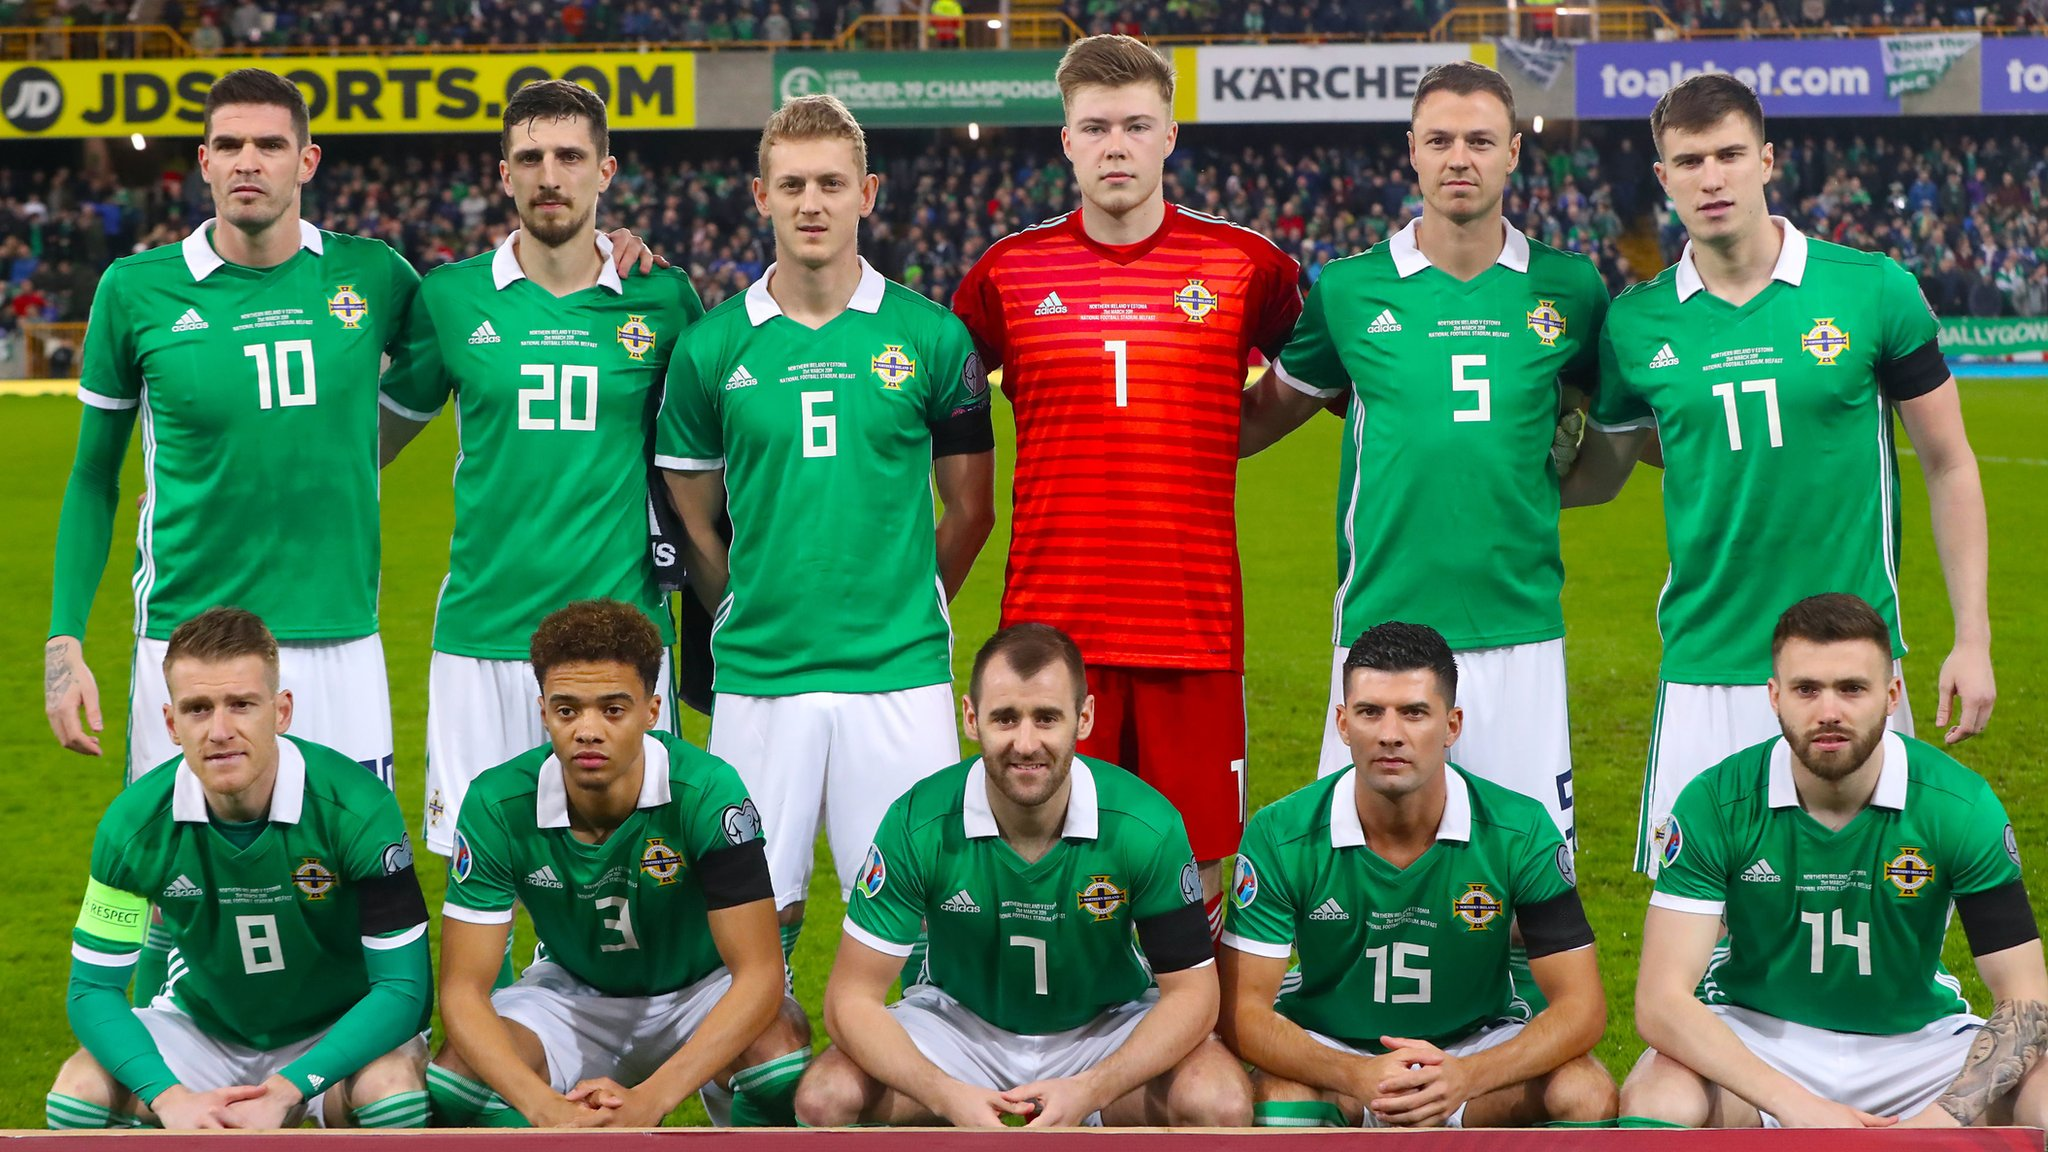 Northern Ireland v Estonia: rate the players